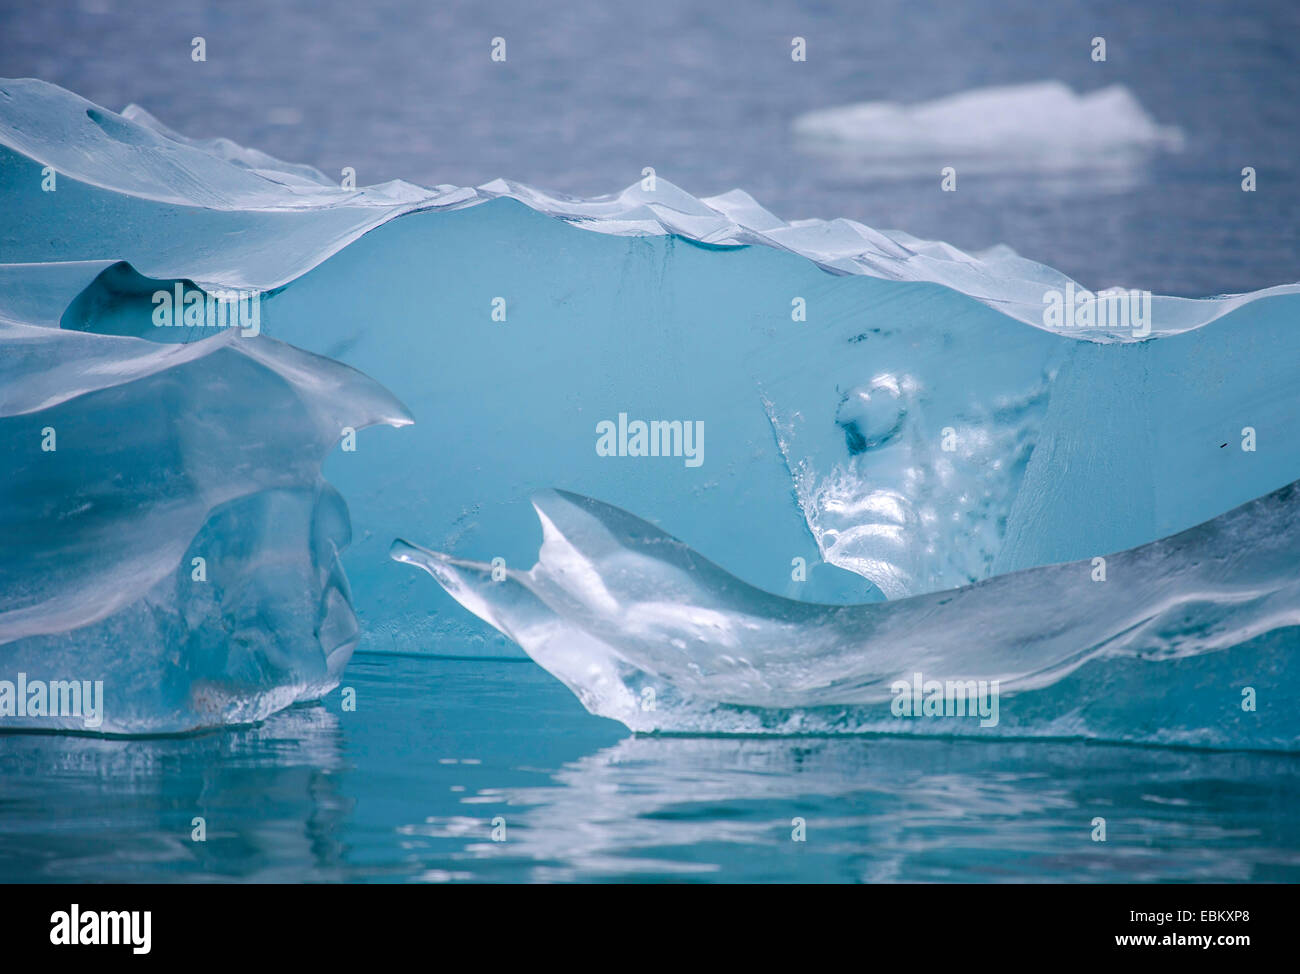 glacier ice weirdly shaped, Norway, Svalbard, Hamiltonbukta - Stock Image